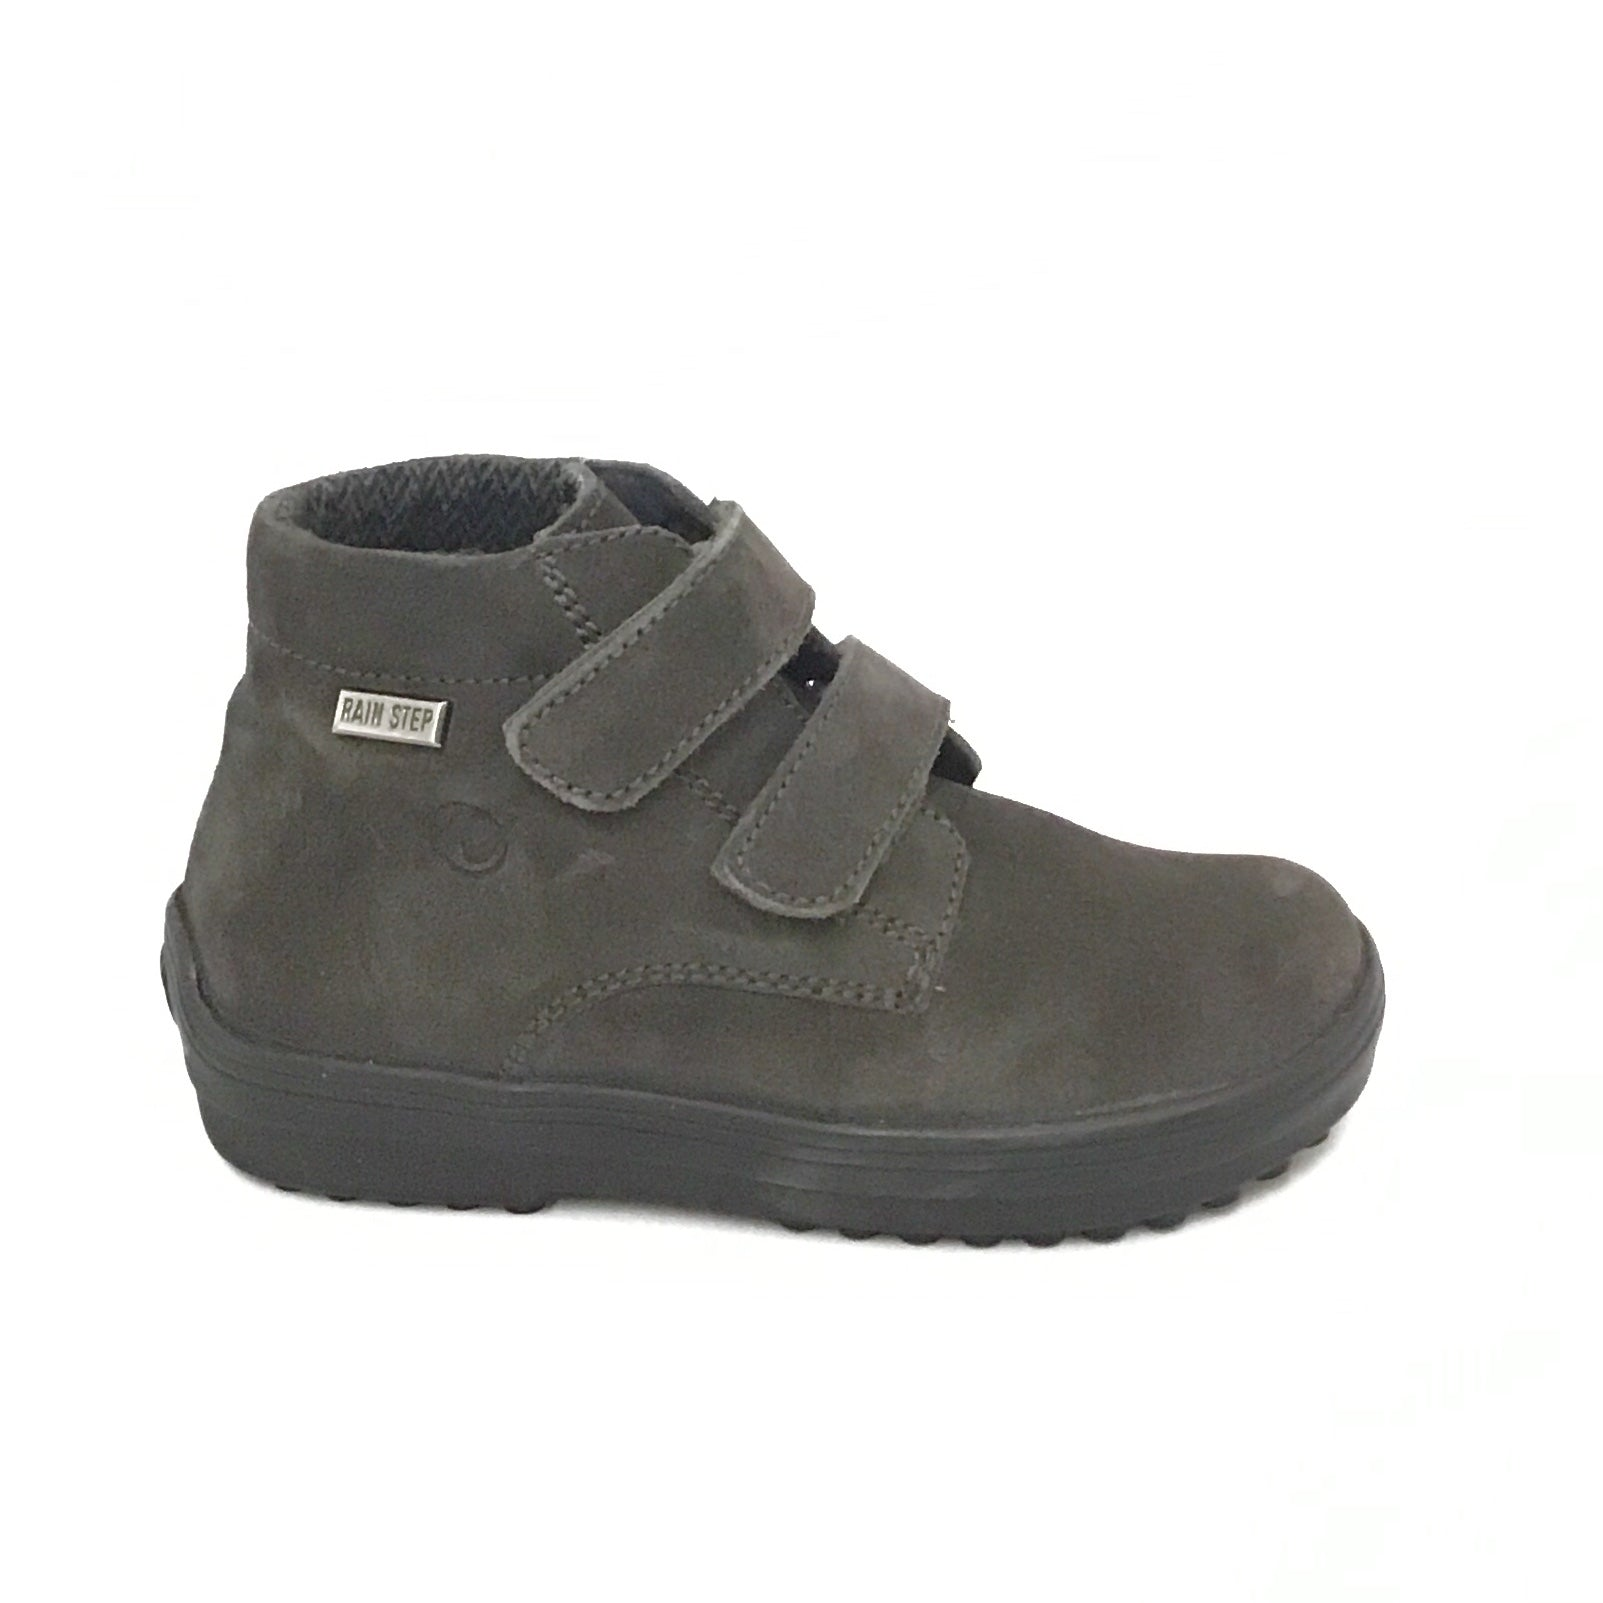 Naturino Charcoal Velour Shoe with Double Velcro